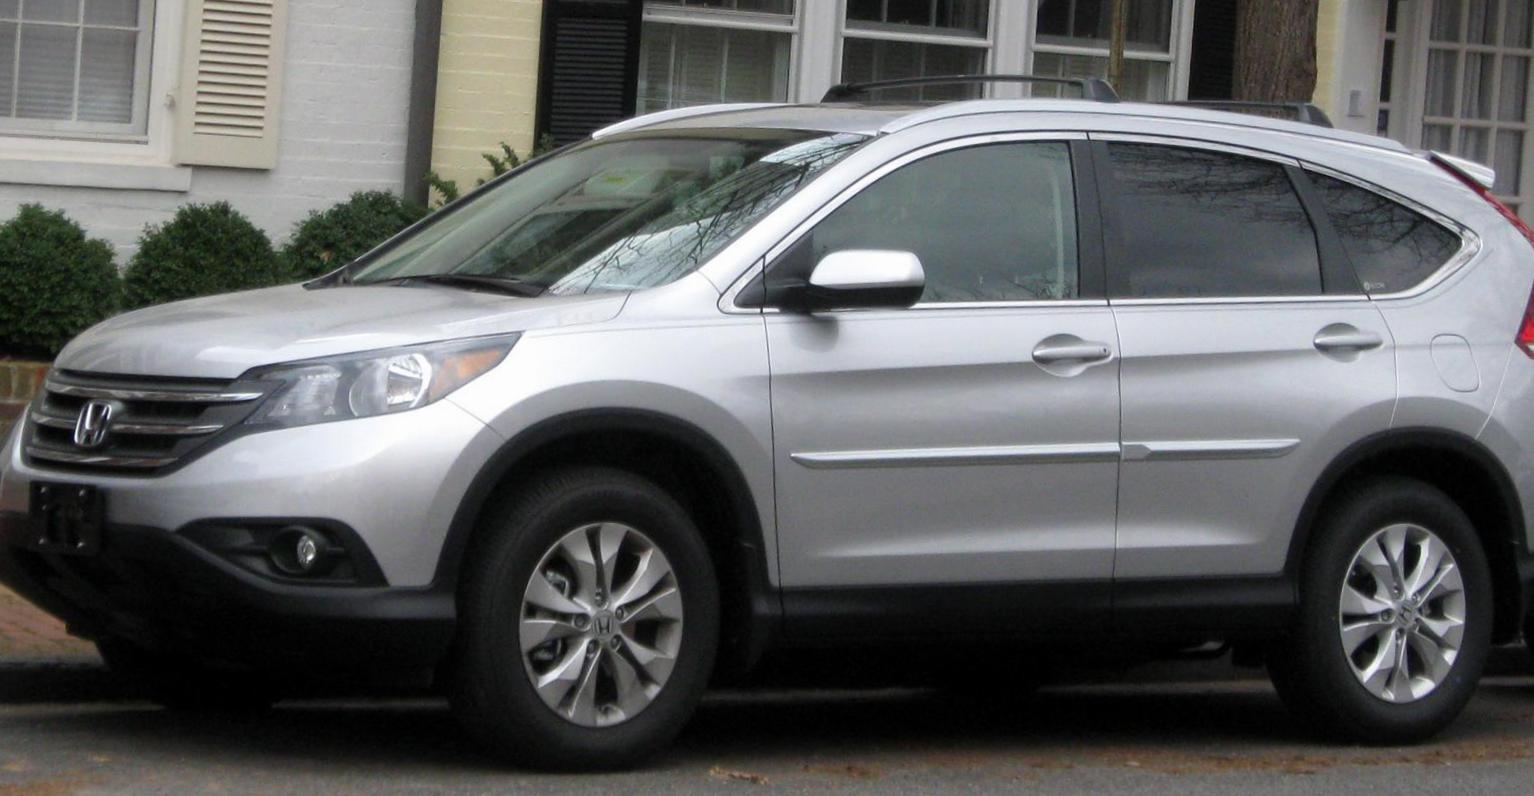 Honda CR-V used sedan